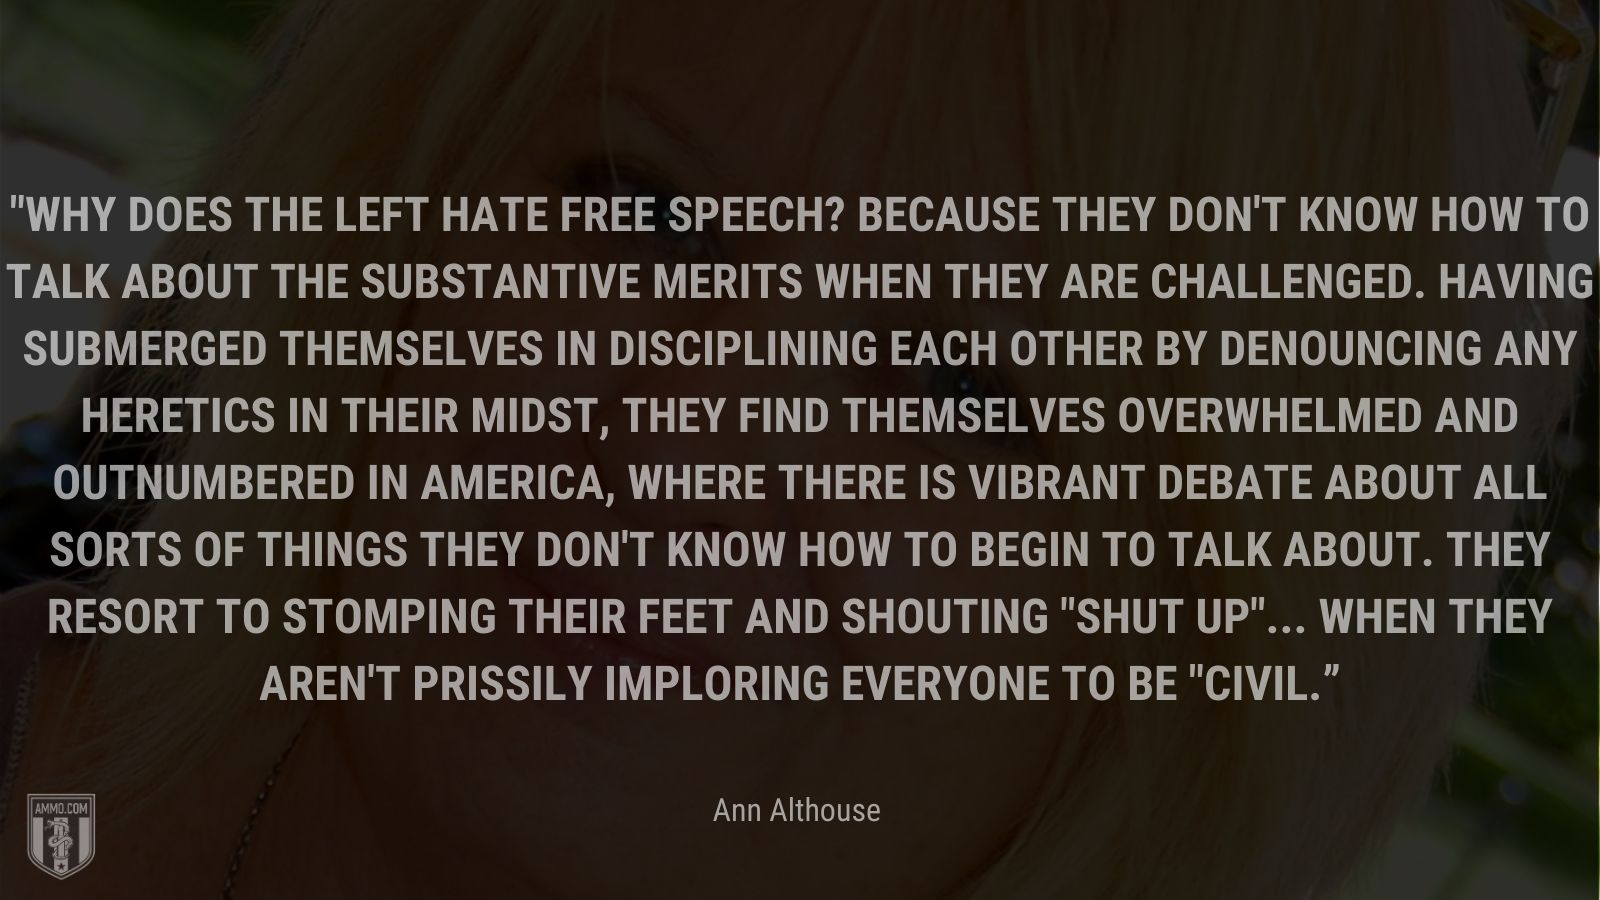 """""""Why does the left hate free speech? Because they don't know how to talk about the substantive merits when they are challenged. Having submerged themselves in disciplining each other by denouncing any heretics in their midst, they find themselves overwhelmed and outnumbered in America, where there is vibrant debate about all sorts of things they don't know how to begin to talk about. They resort to stomping their feet and shouting shut up... when they aren't prissily imploring everyone to be civil."""" - Ann Althouse"""